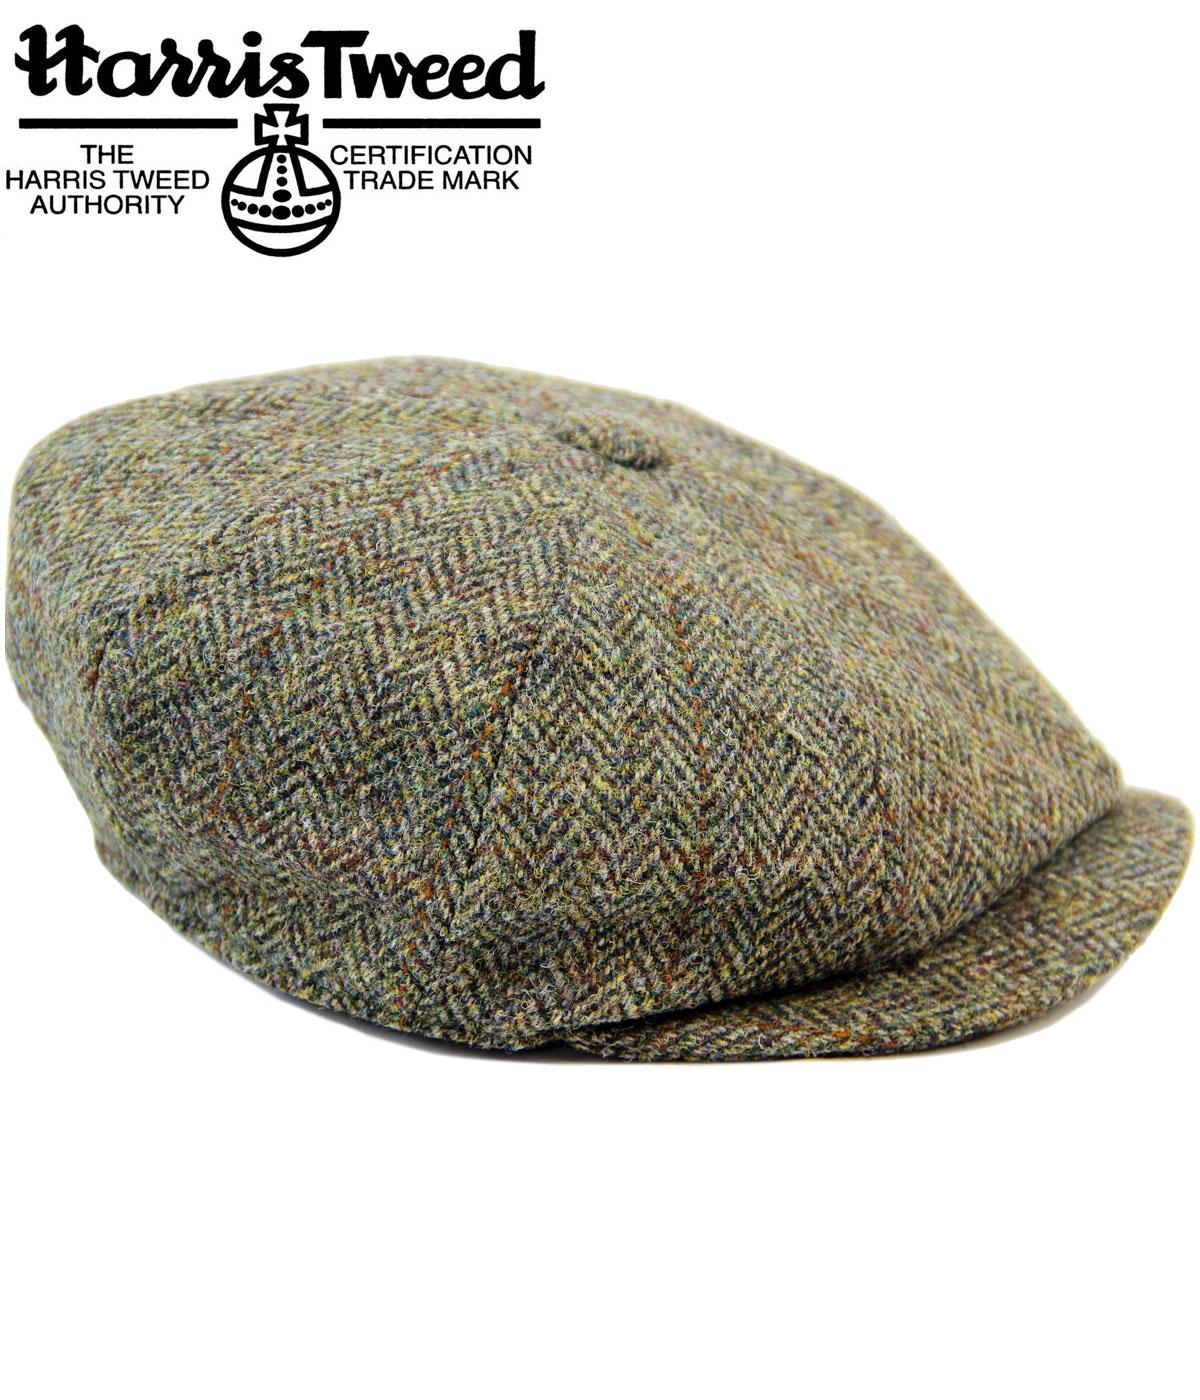 Carloway FAILSWORTH Harris Tweed Retro Gatsby Cap